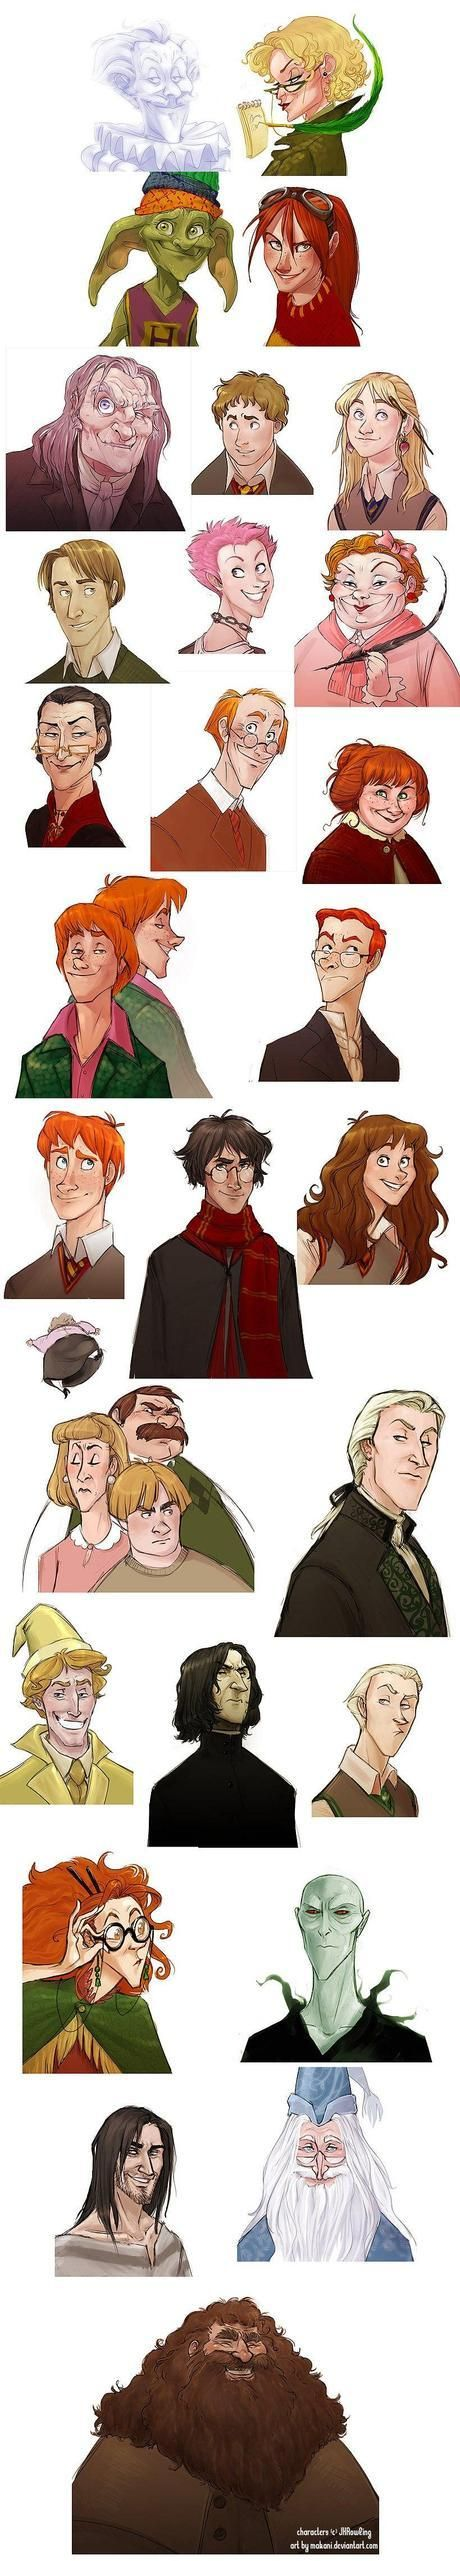 Harry Potter : Les 50 plus belles illustrations